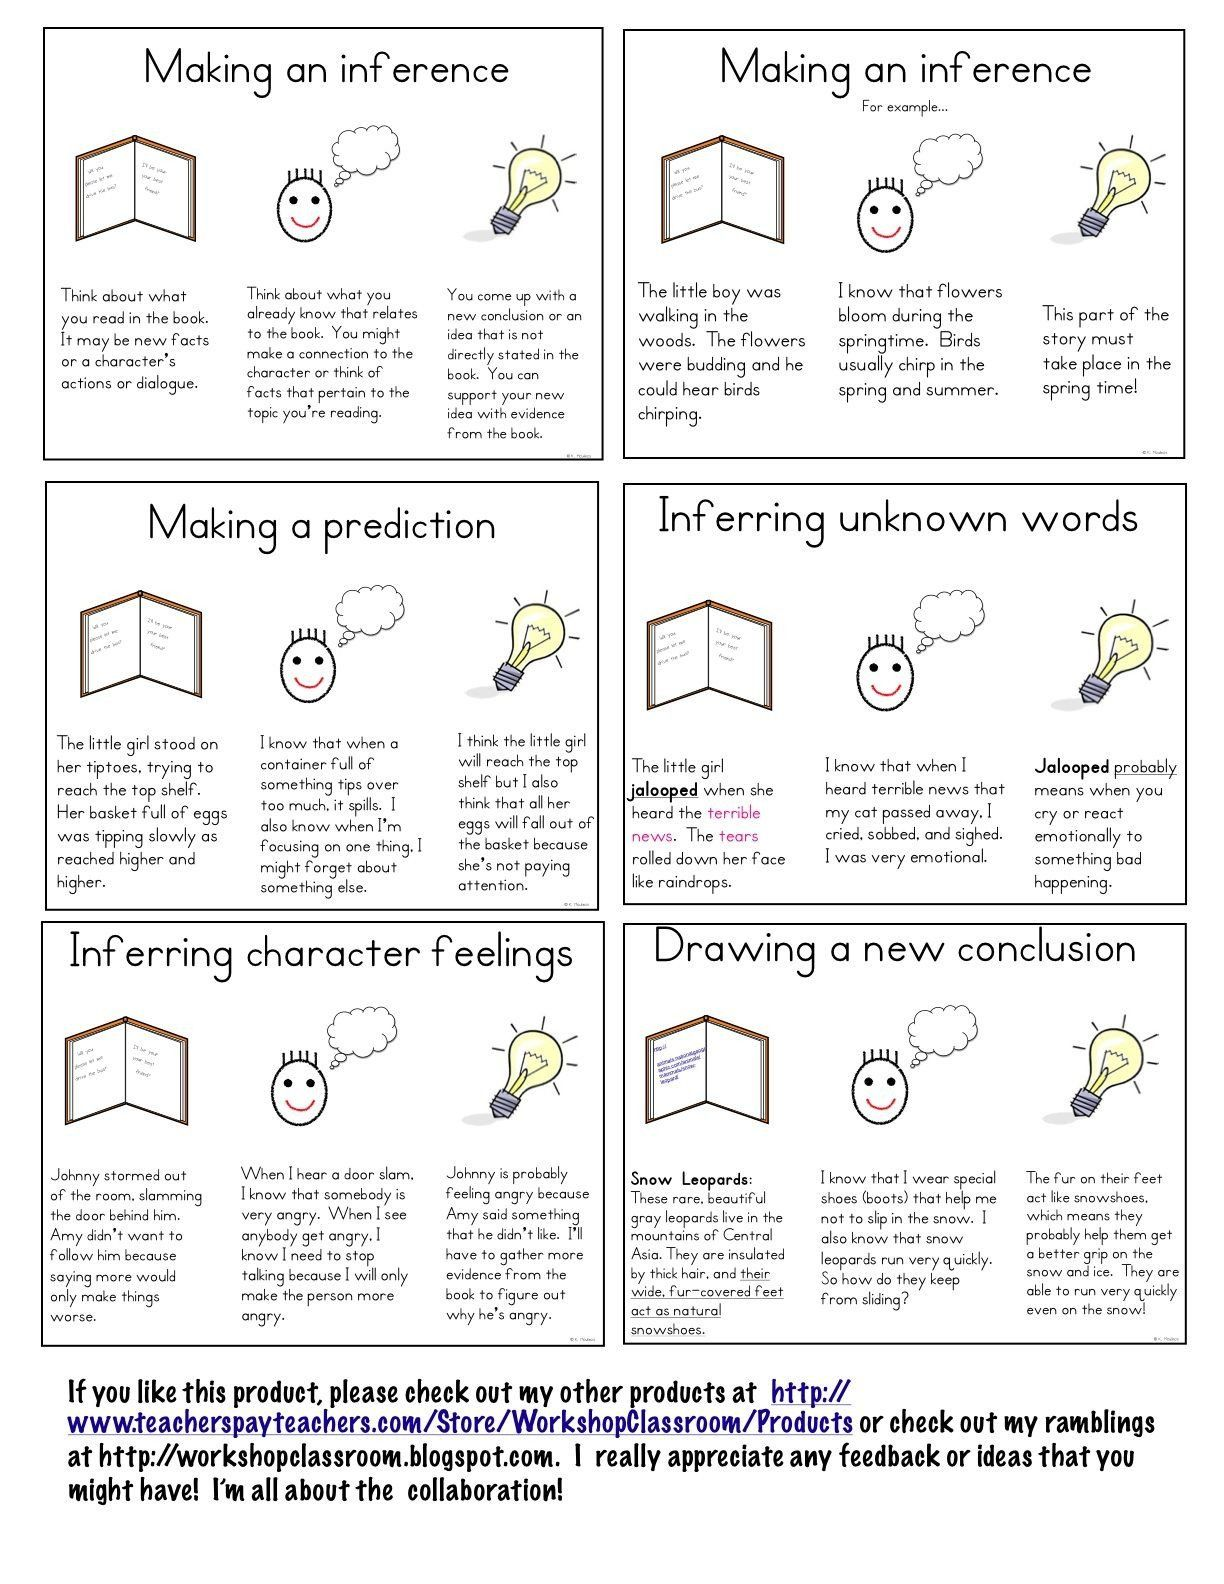 Drawing Conclusions Worksheets 2nd Grade Drawing Conclusion Worksheet Third Grade Inference Task Cards Inferencing Mini Lessons [ 1584 x 1224 Pixel ]